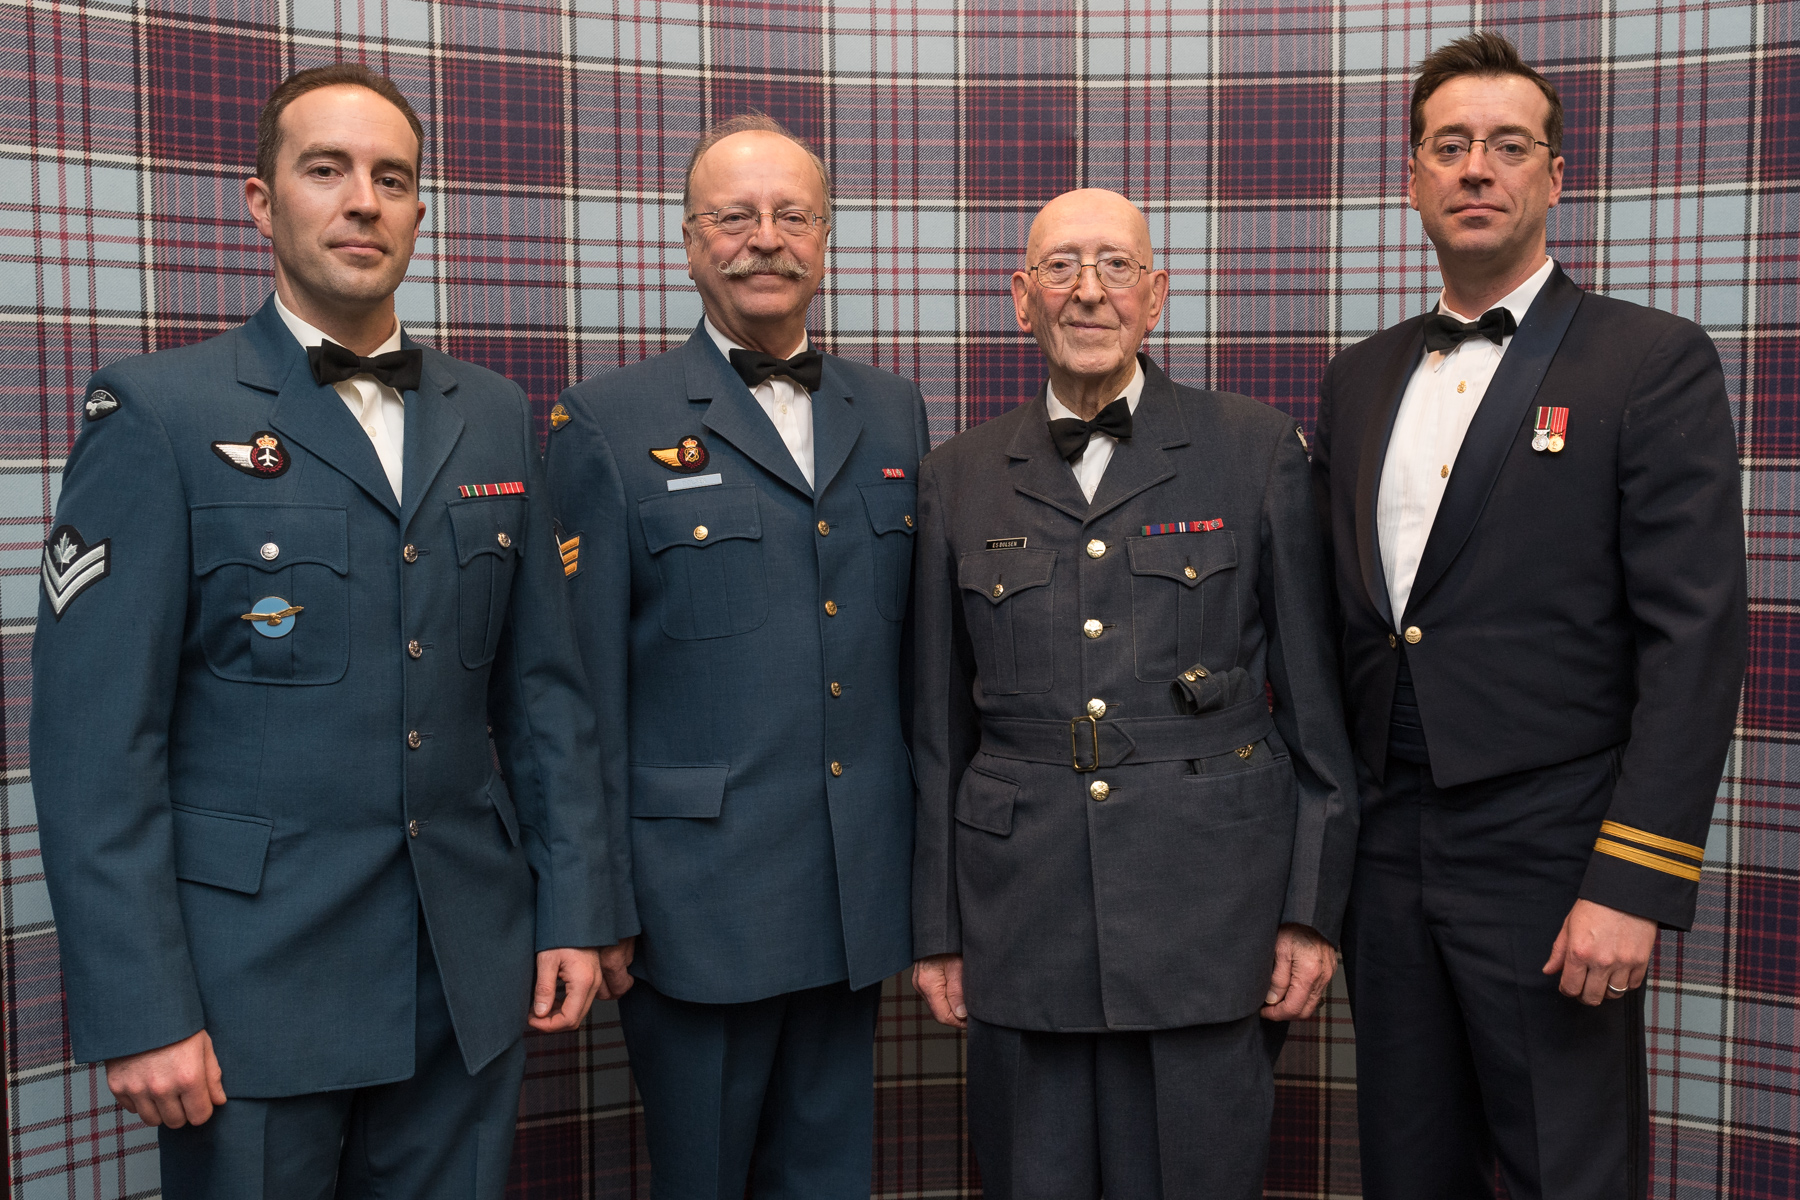 Four men of varying ages, wearing uniforms with bow ties, stand in a line in front of a tartan backdrop.